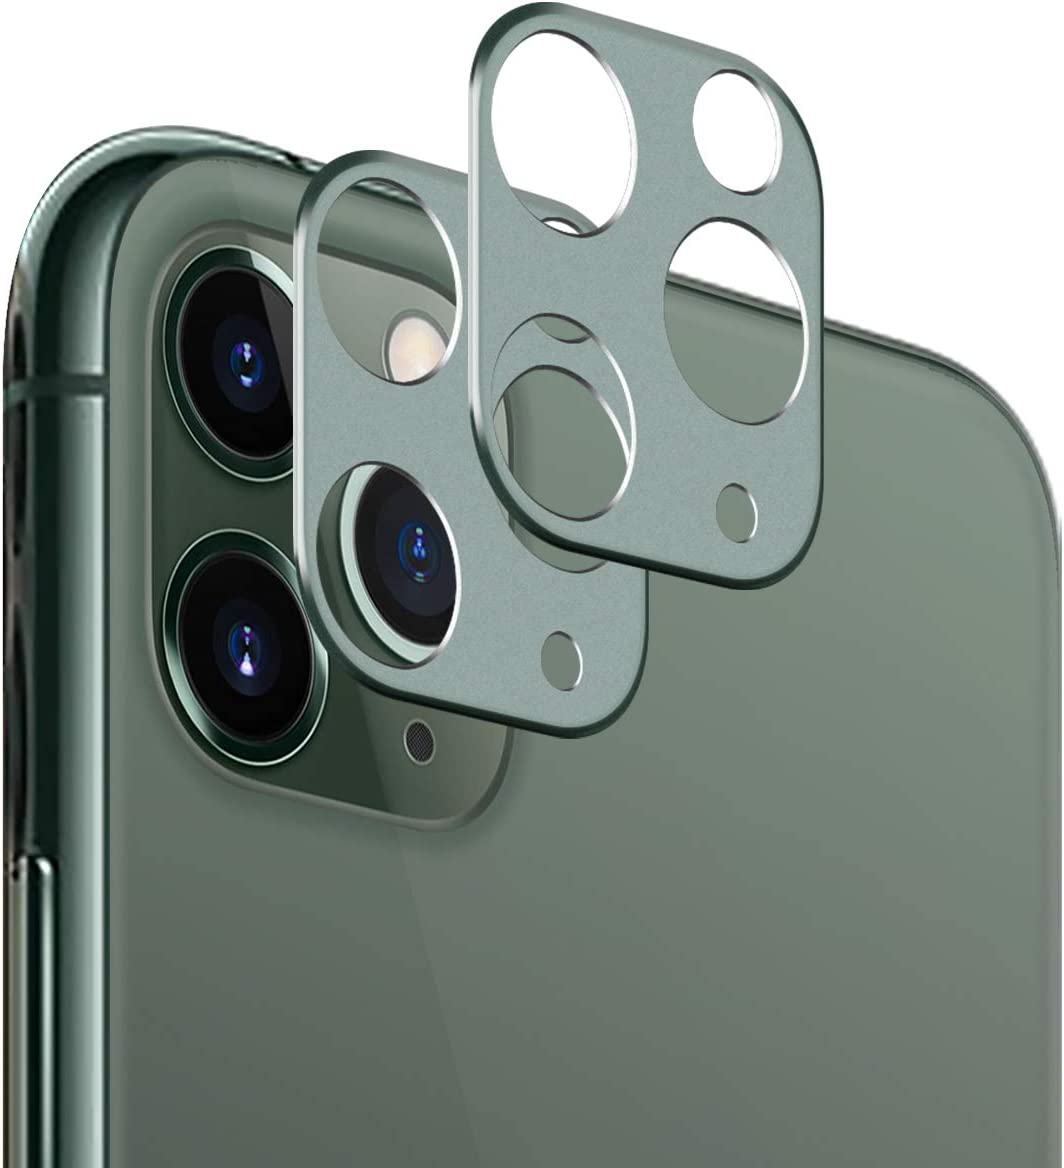 Casetego for iPhone 11 Pro Max/11 Pro Camera Lens Protector, [2 Pack] Aluminum Alloy Lens Protective Ring Circle Metal Camera Lens Protector for Apple iPhone 11 Pro Max/11 Pro,Midnight Green